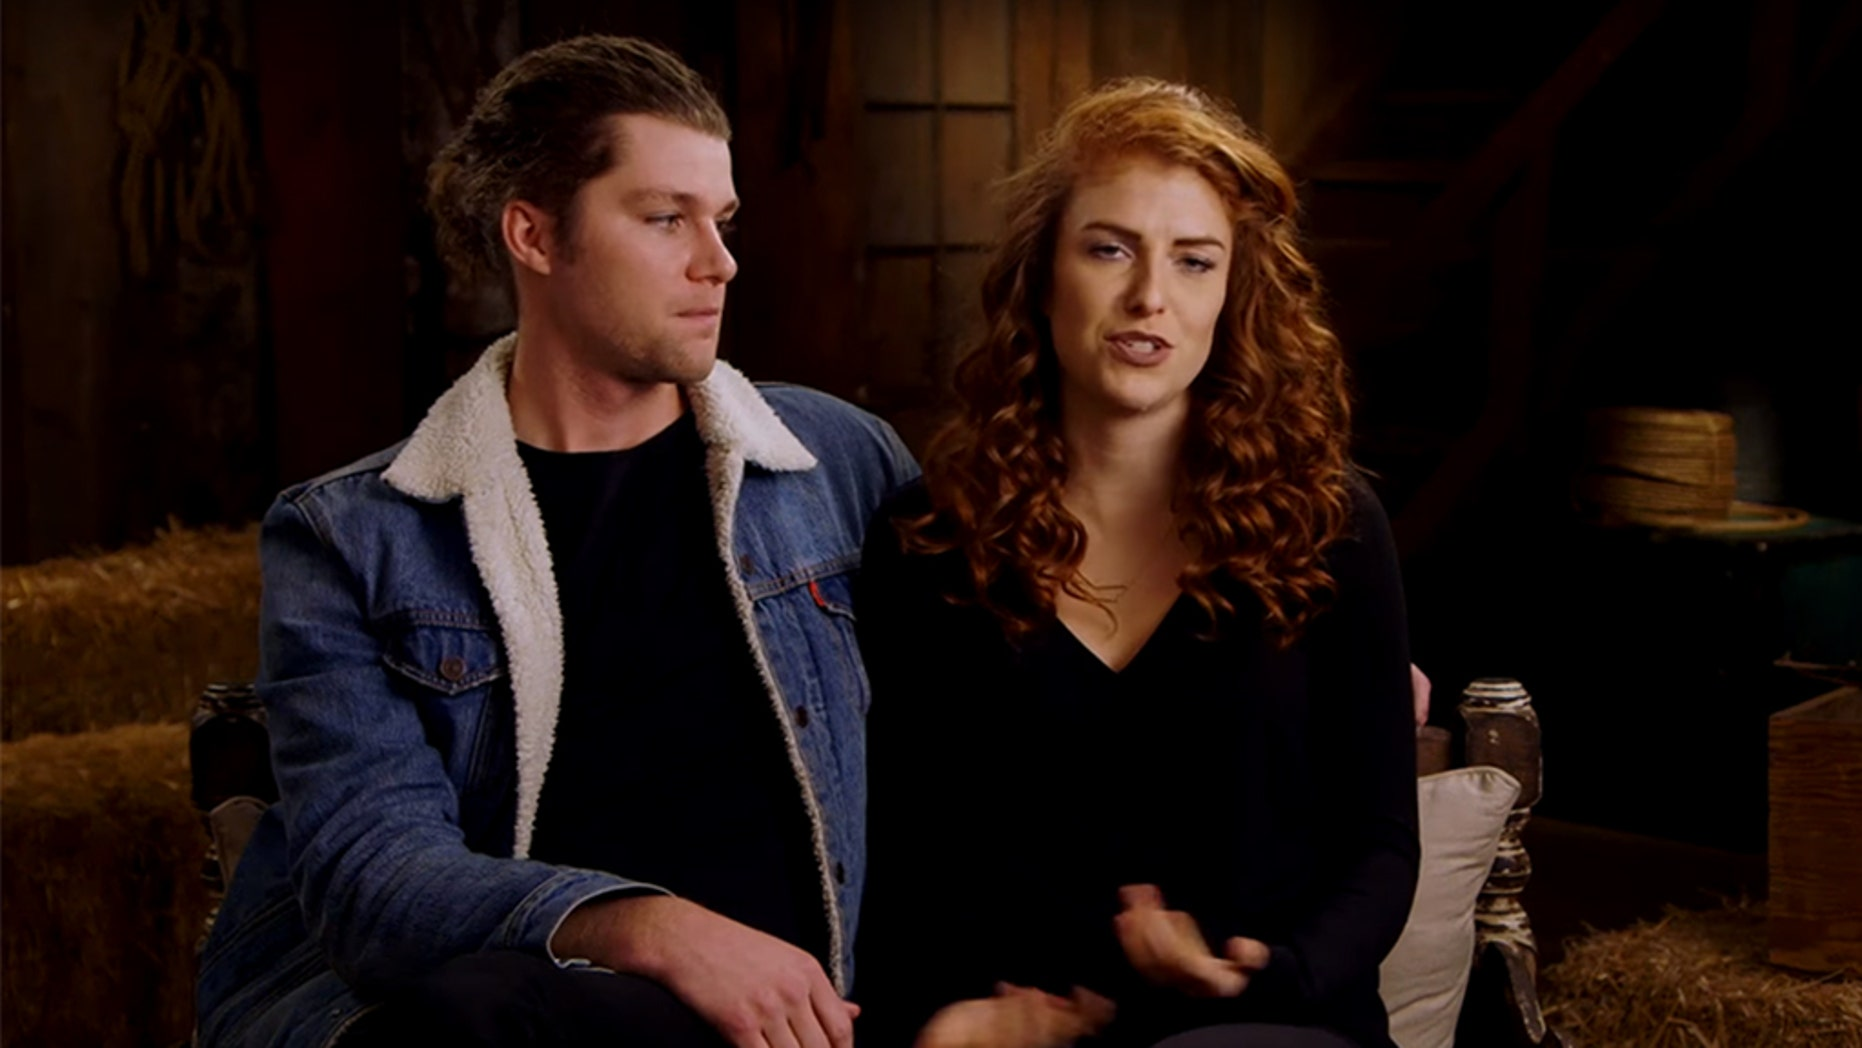 """Little People, Big World"" stars Jeremy and Audrey Roloff announced on Tuesday that they are leaving the show after 14 years."